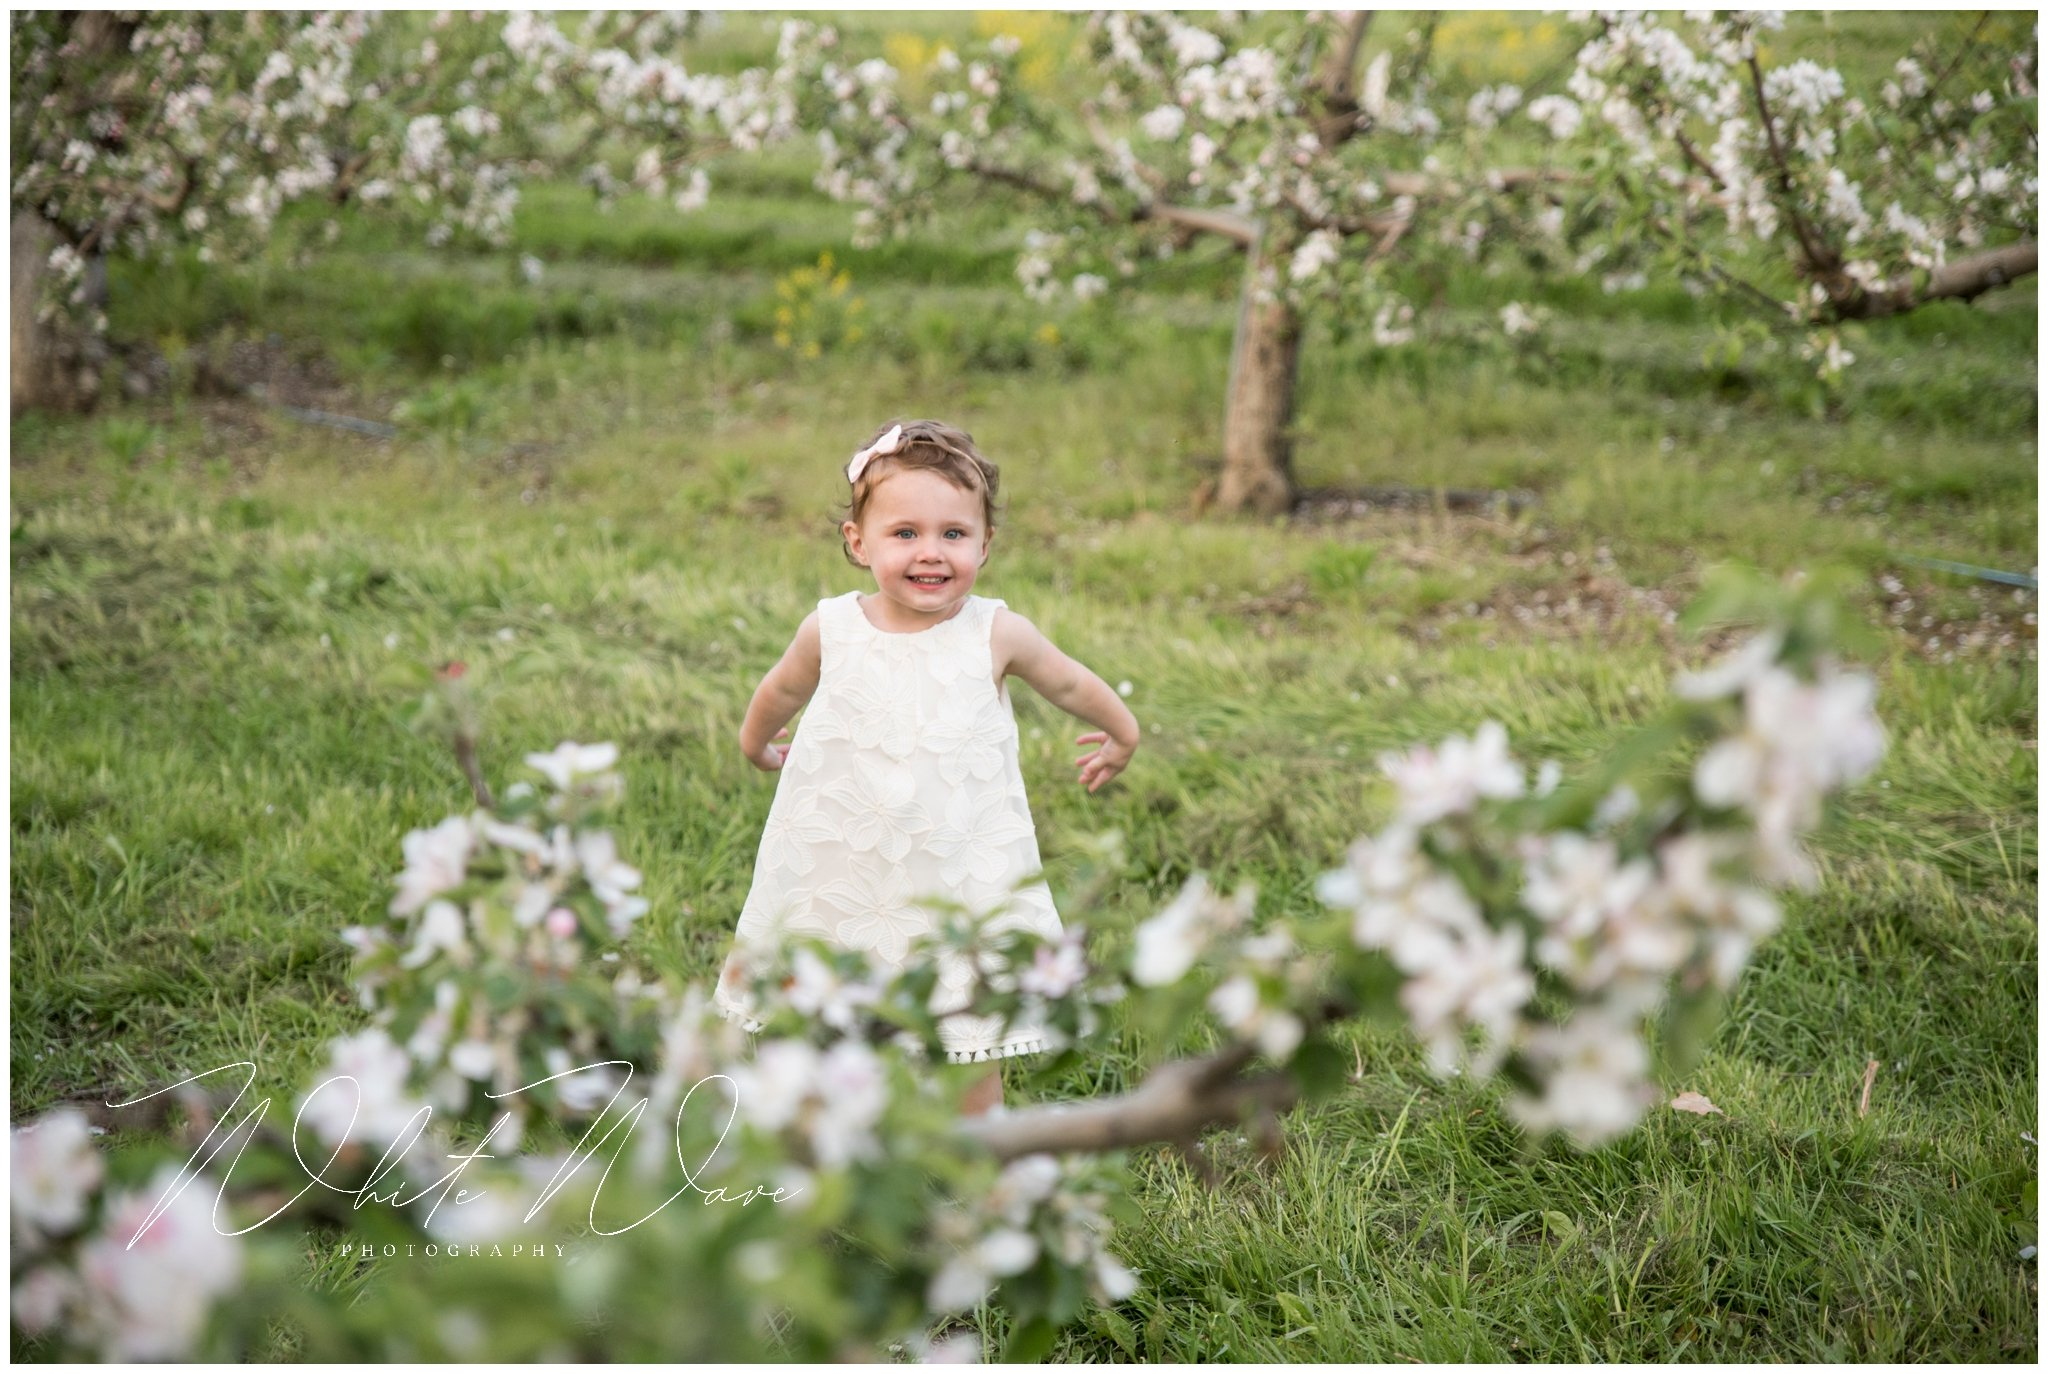 One sweet little girl during this outdoor family portrait session